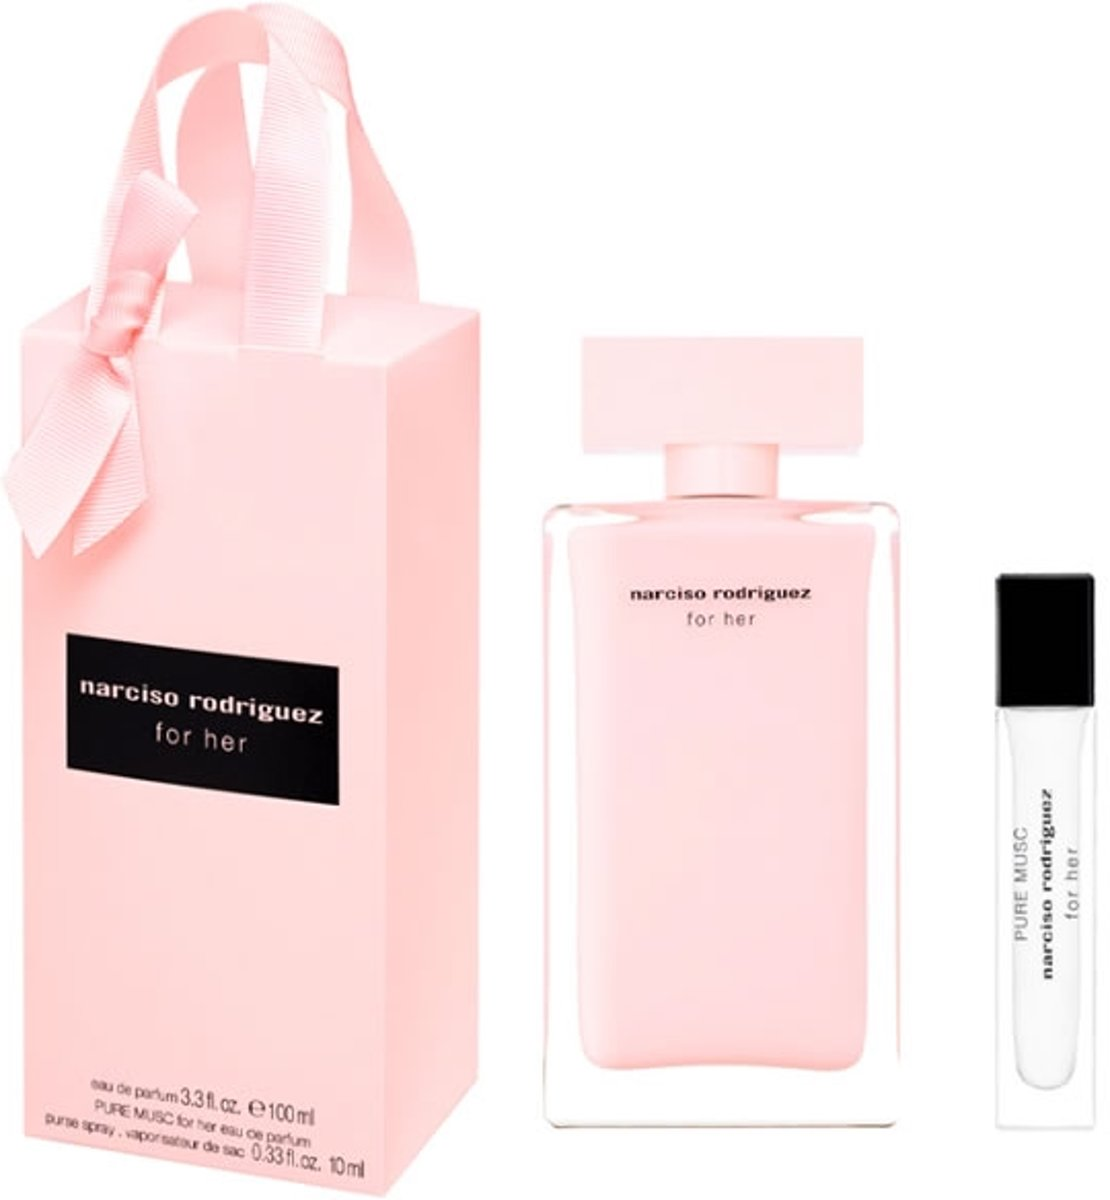 Narciso Rodriguez For Her Eau De Parfum Spray 100ml Set 2 Pieces 2020